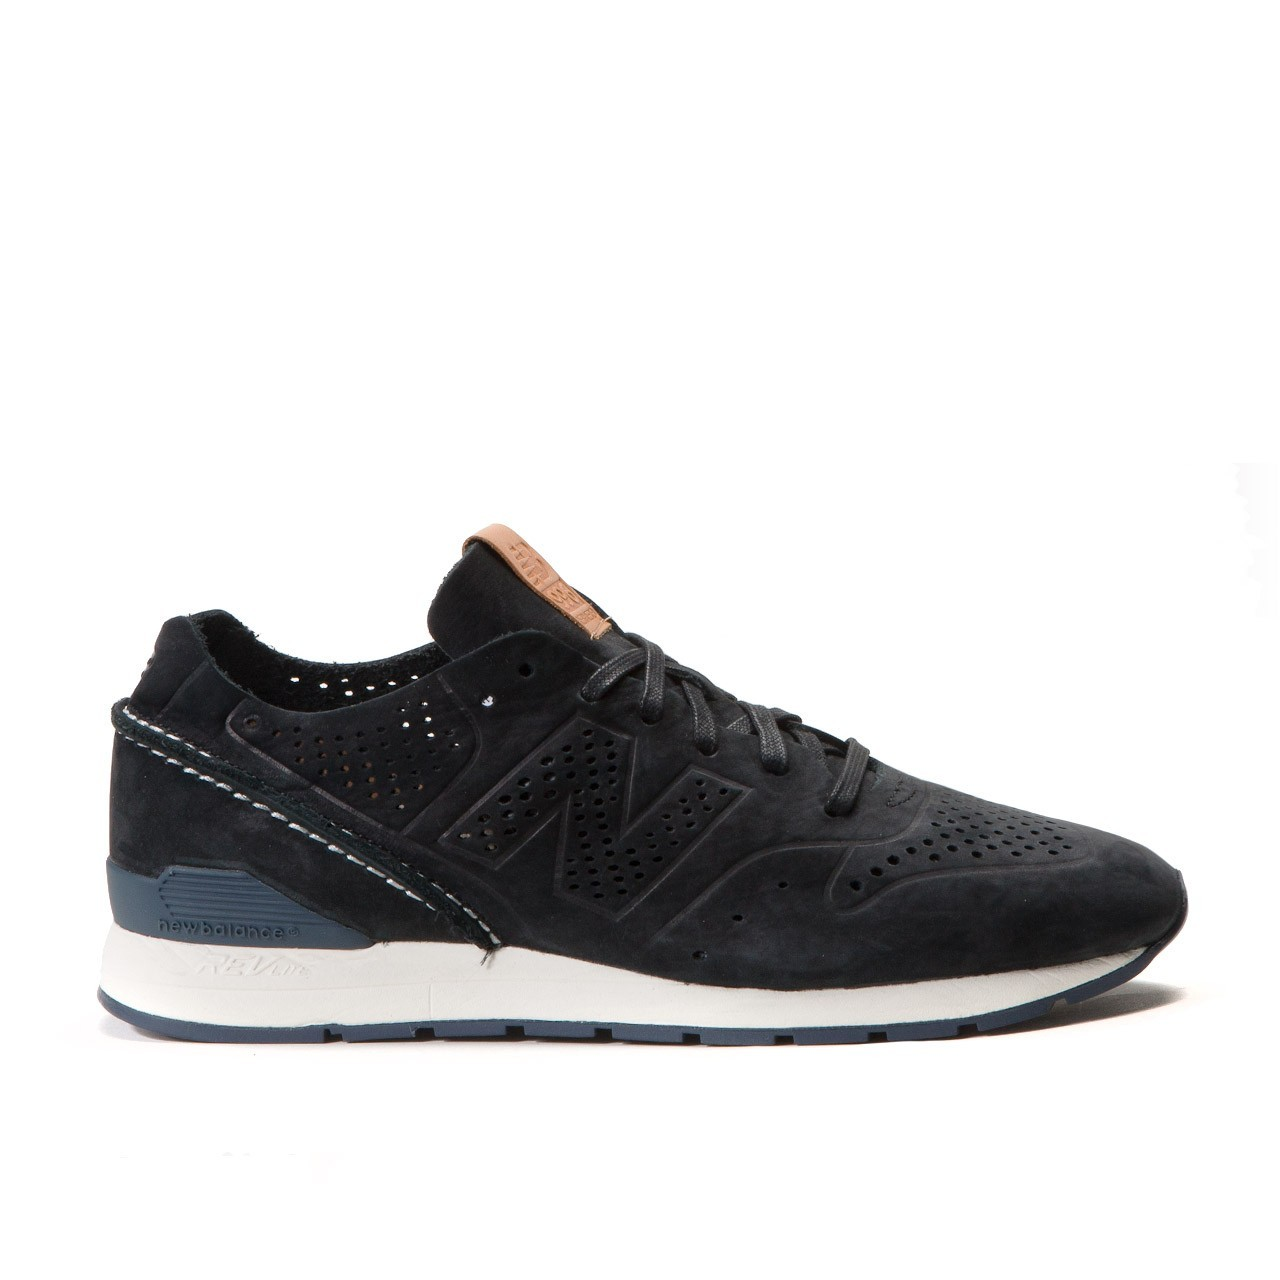 "Men's New Balance MRL 996 DX Reengineered ""Deconstructed Pack"" Trainers Black"